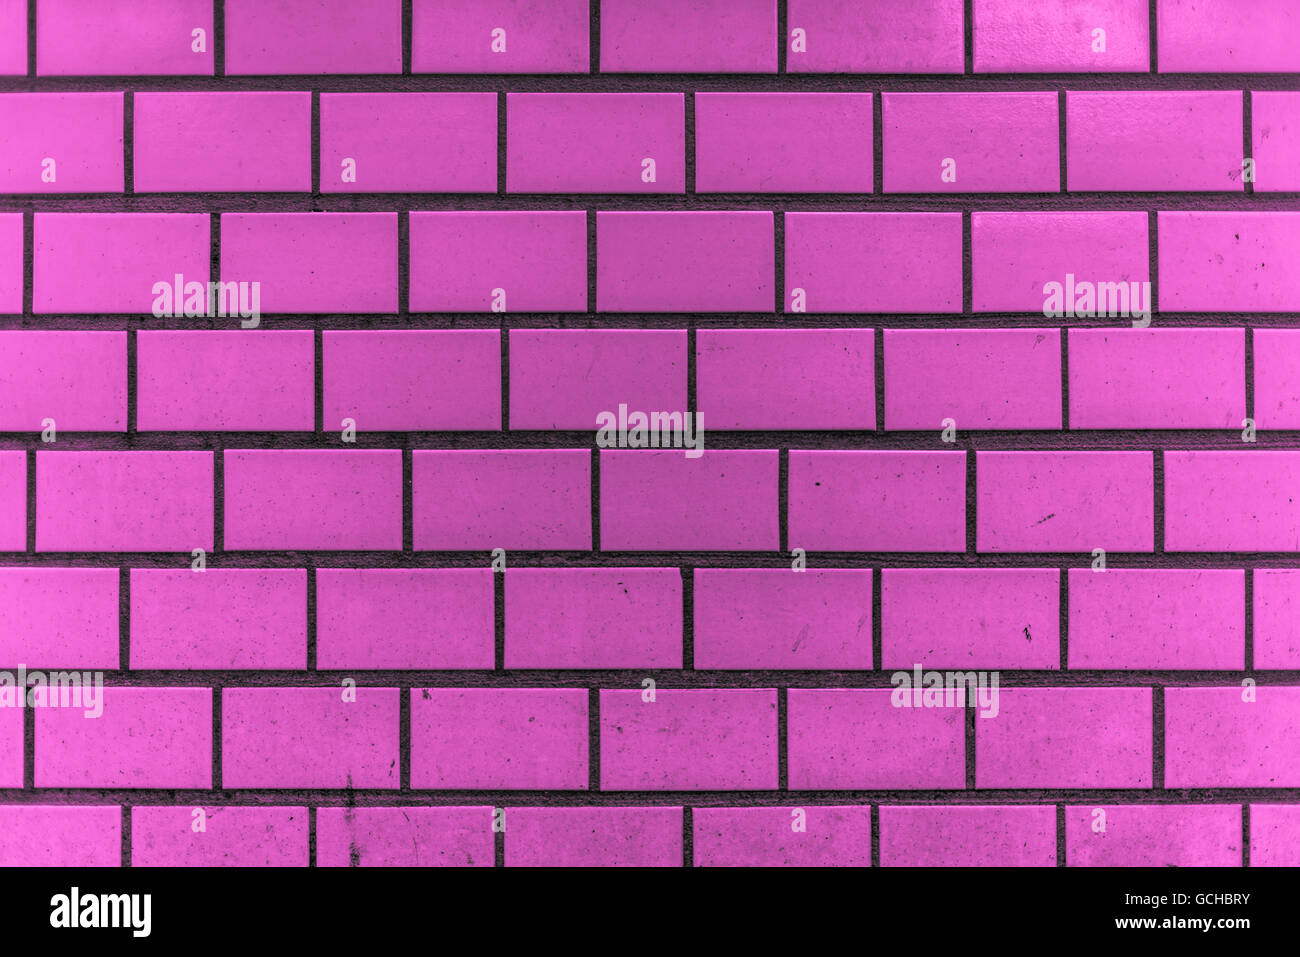 dirty and grainy purple pink or purplish pinkish violet vintage city tiles underground style wall with some splashes - Stock Image